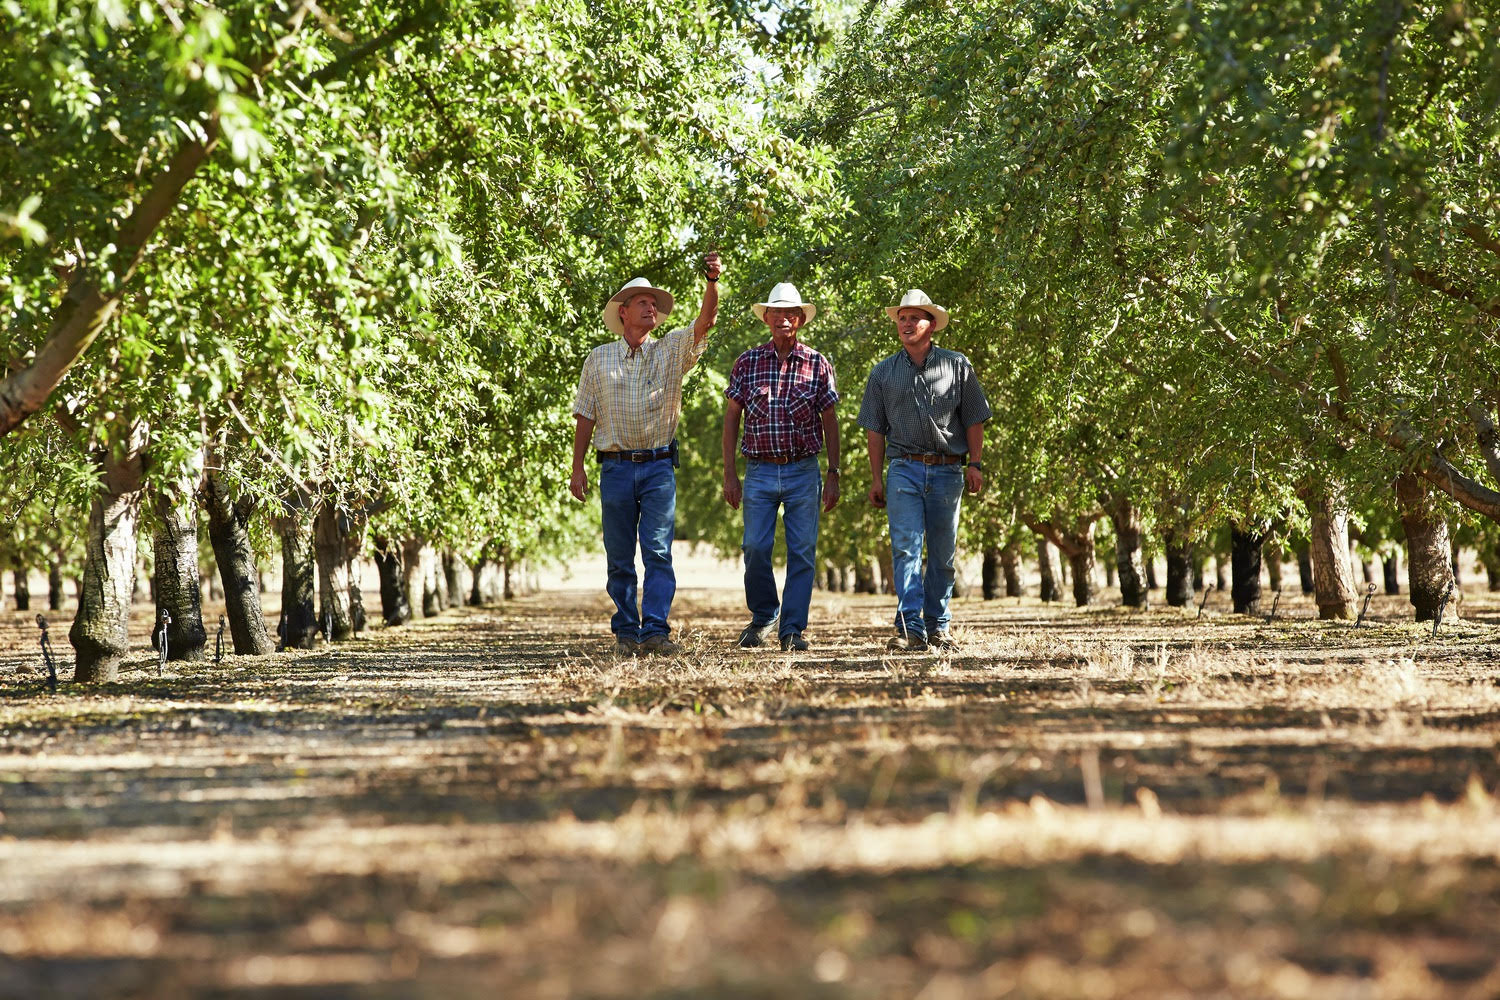 NASS Predicts Another Record-Breaking Almond Crop